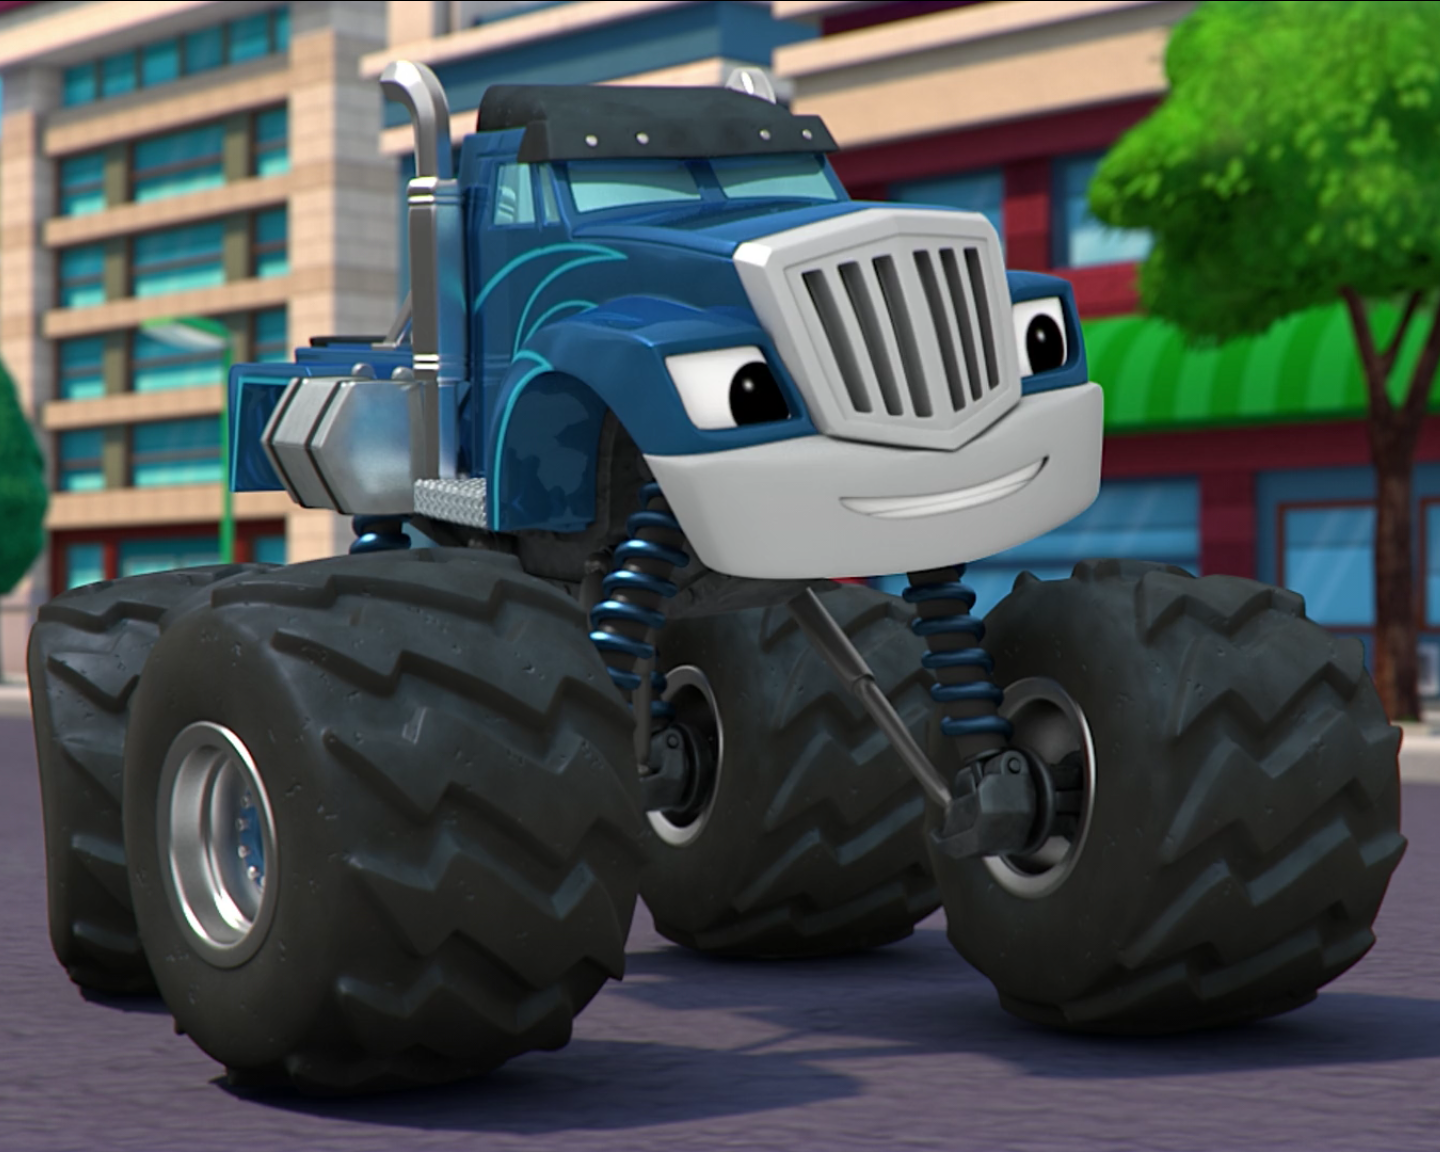 Crusher Blaze And The Monster Machines Wiki Fandom